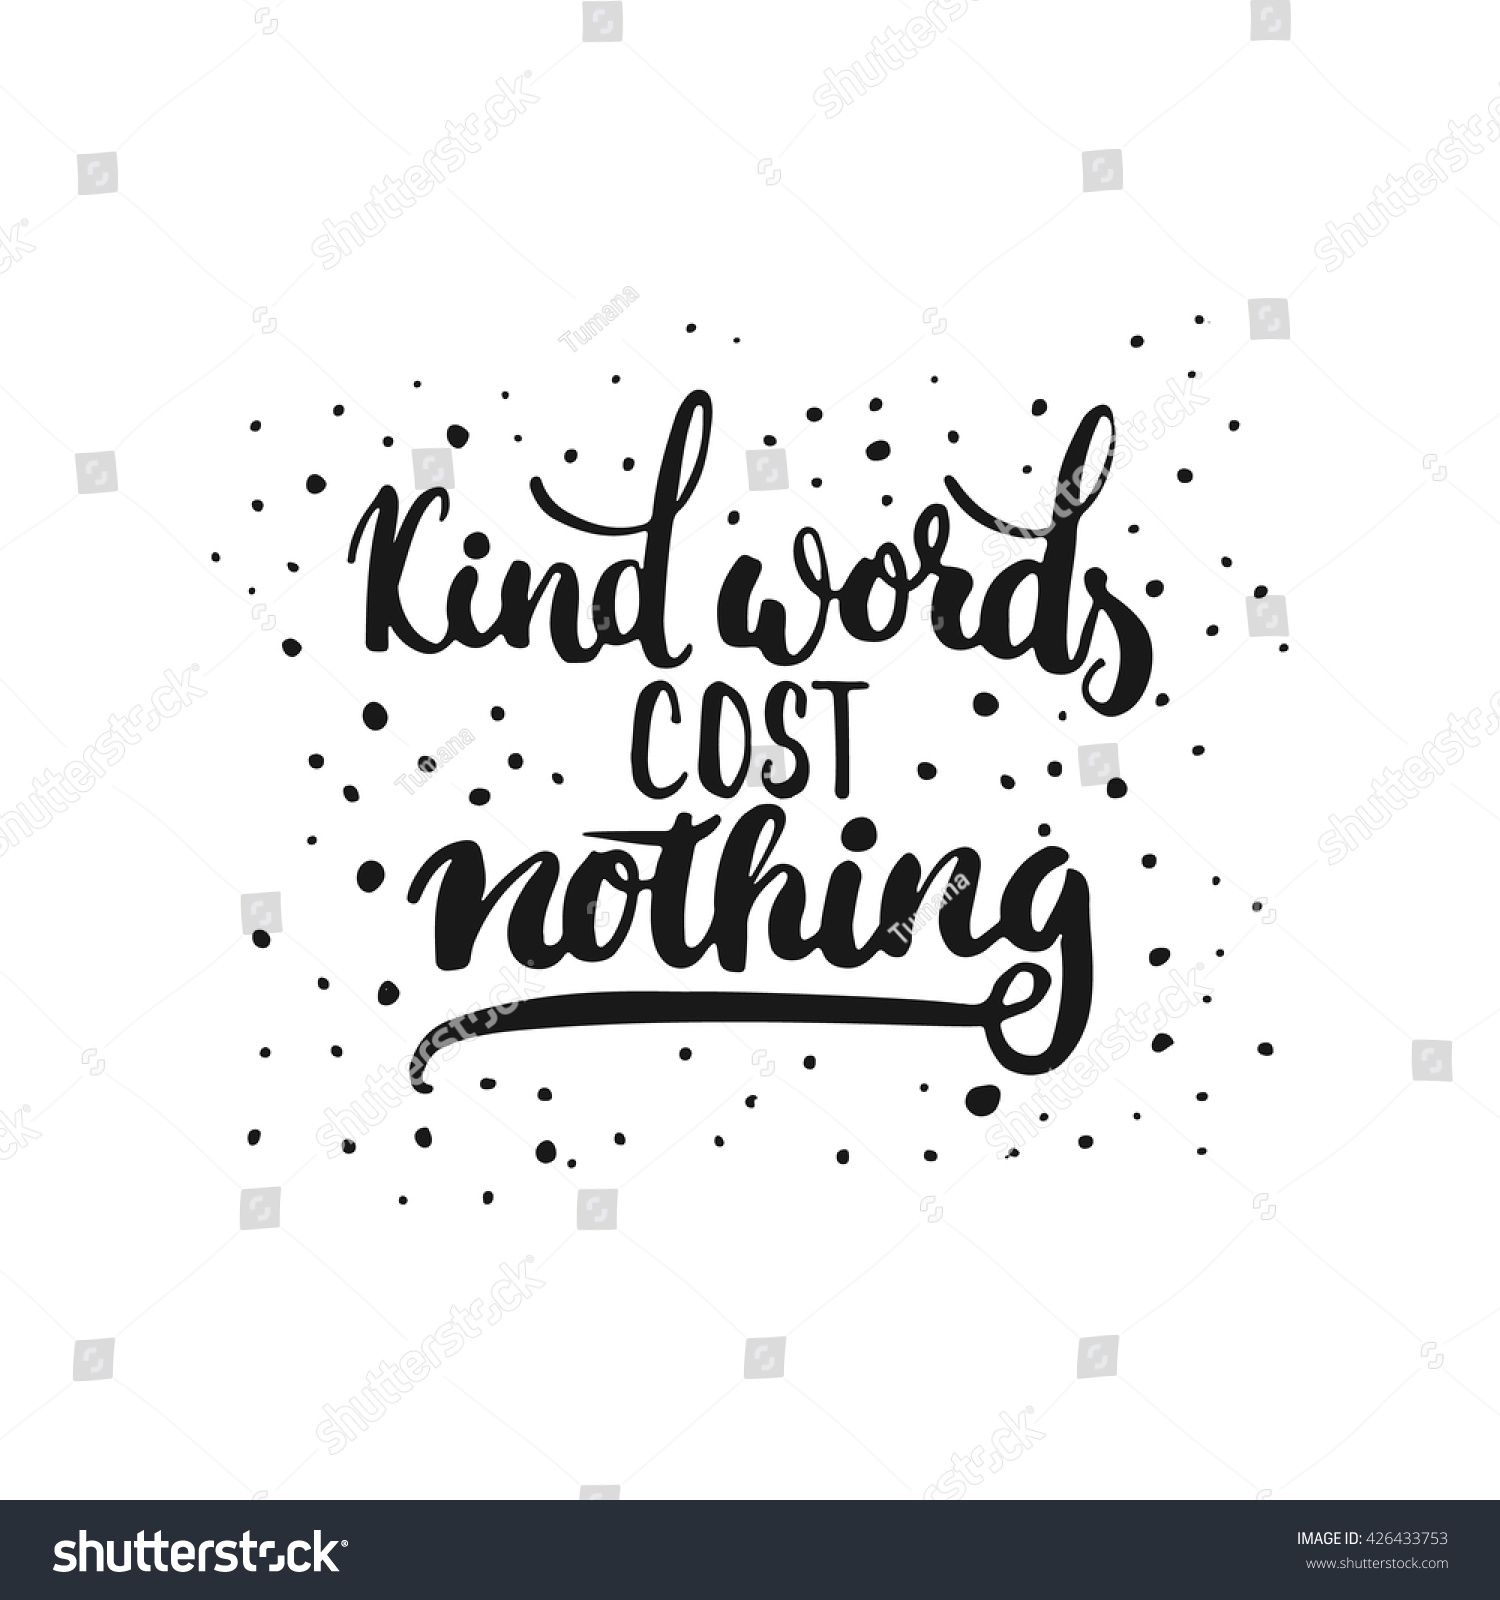 Poster design cost - Kind Words Cost Nothing Hand Drawn Lettering Phrase Isolated On The White Background